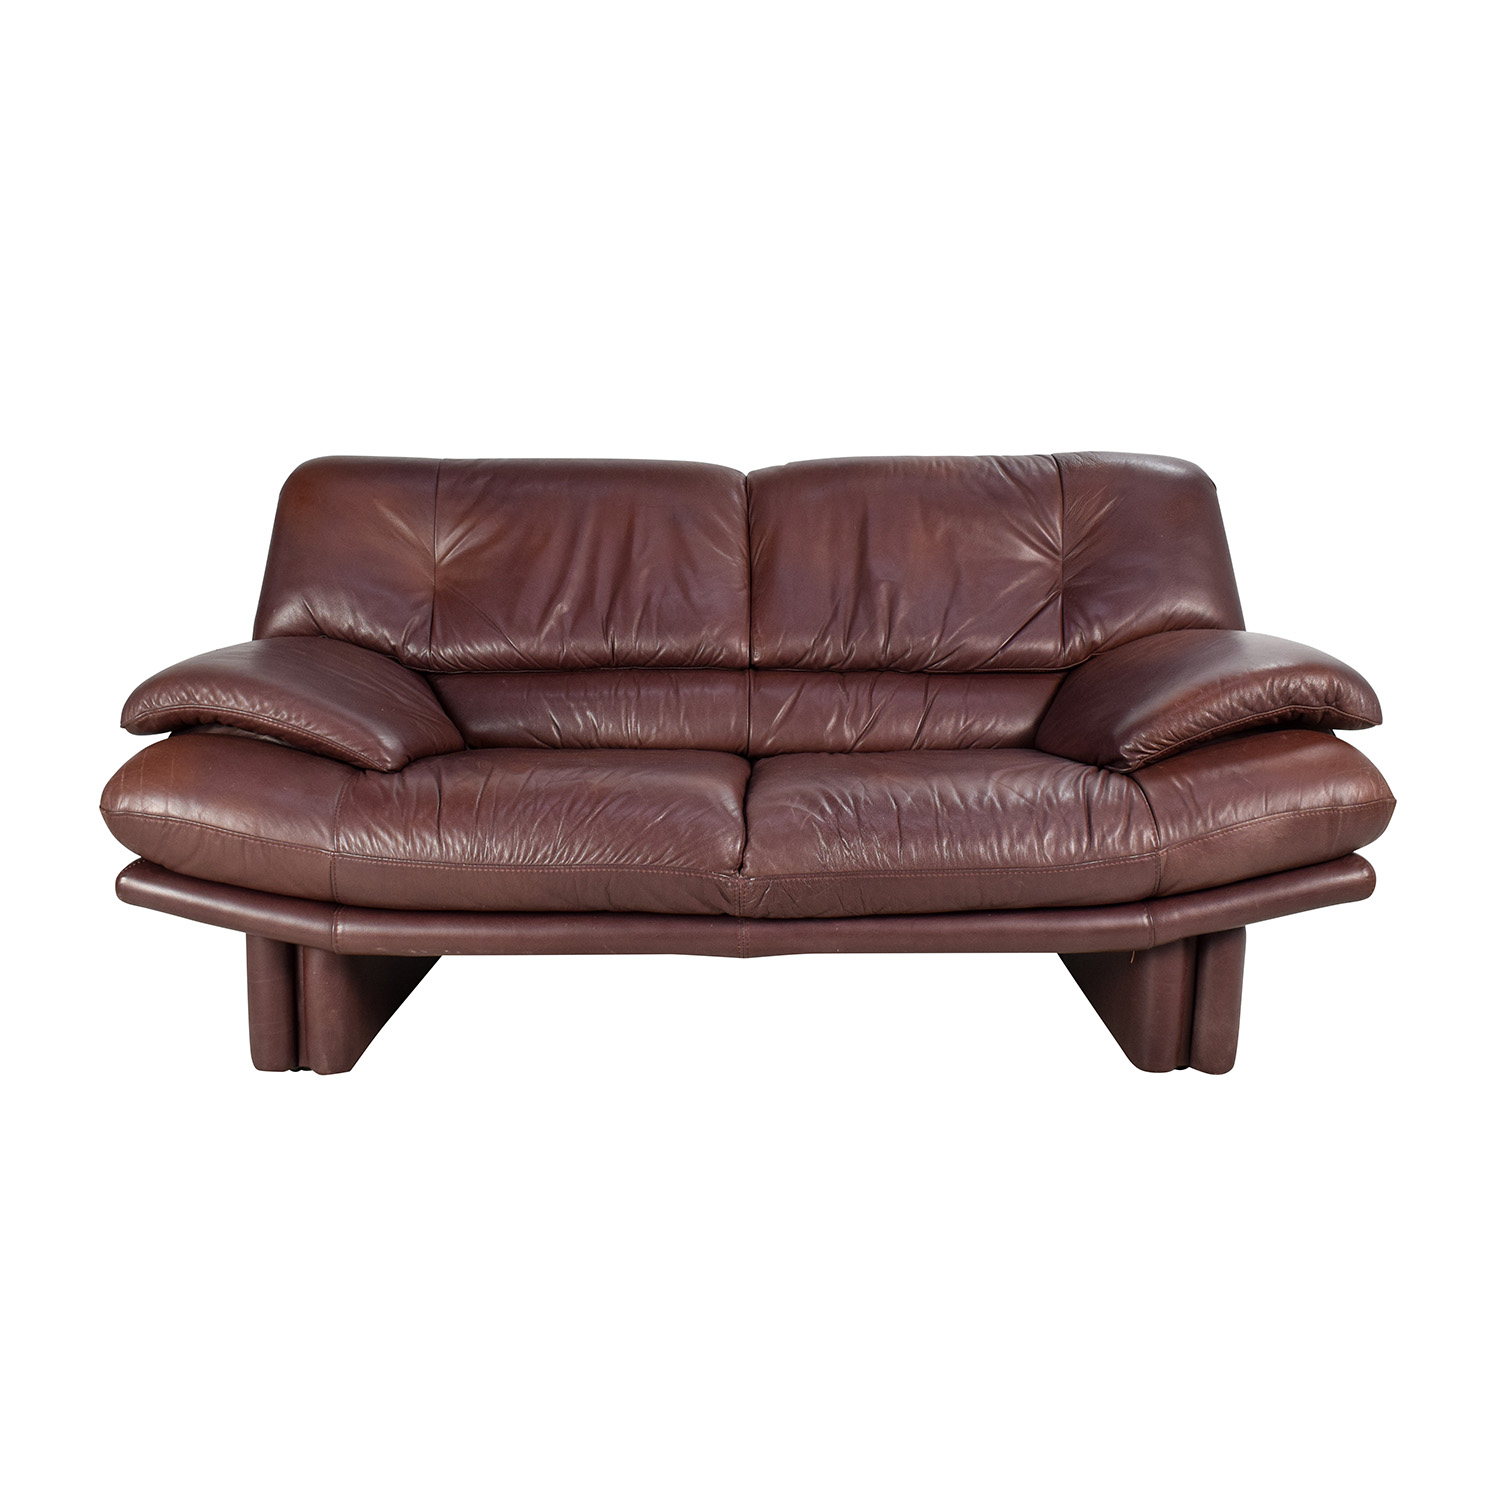 Maurice Villency Maurice Villency Brown Leather Sofa Used